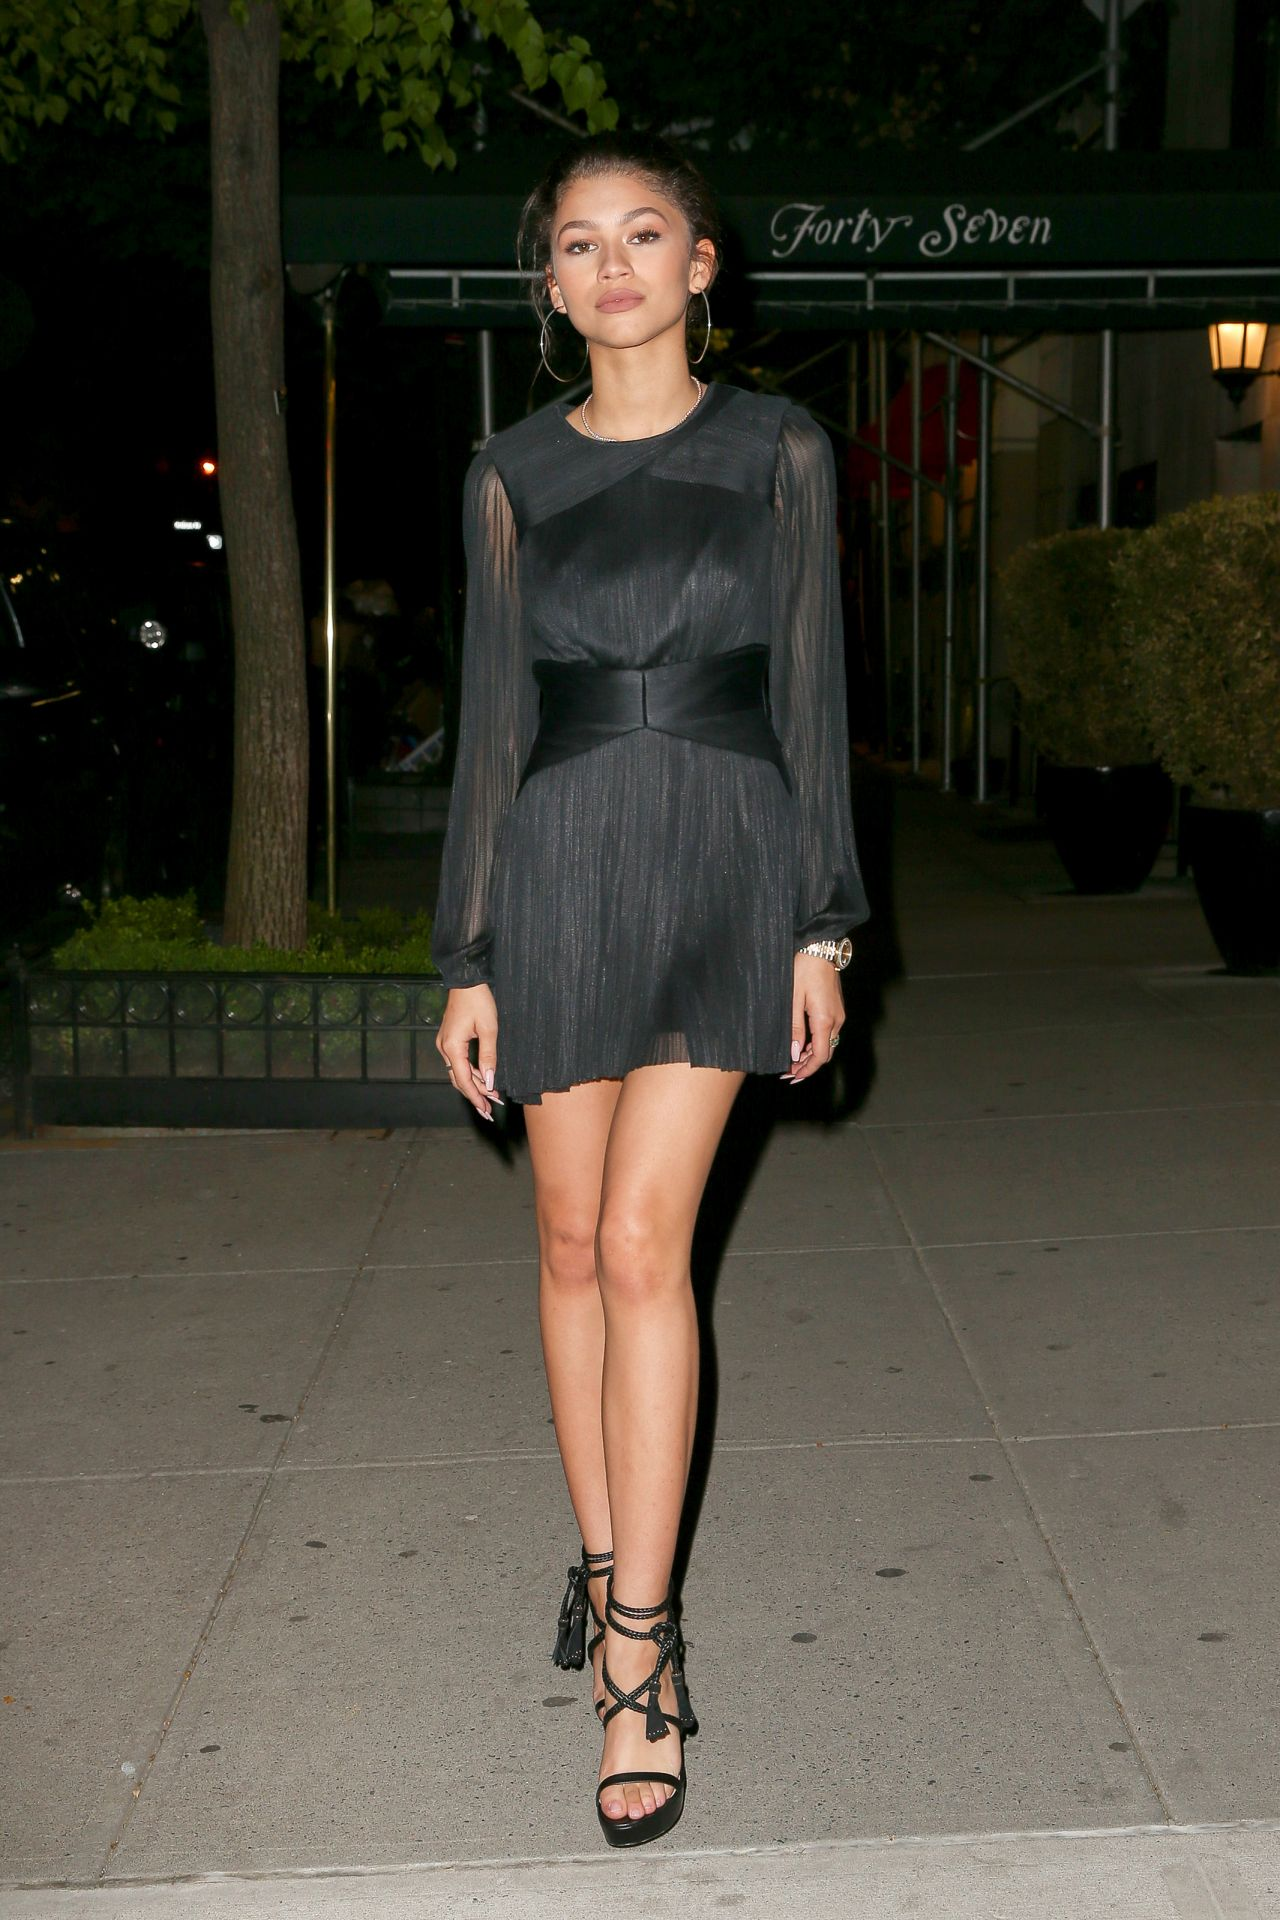 Zendaya Hot In Black Mini Dress Out In Nyc May 2015